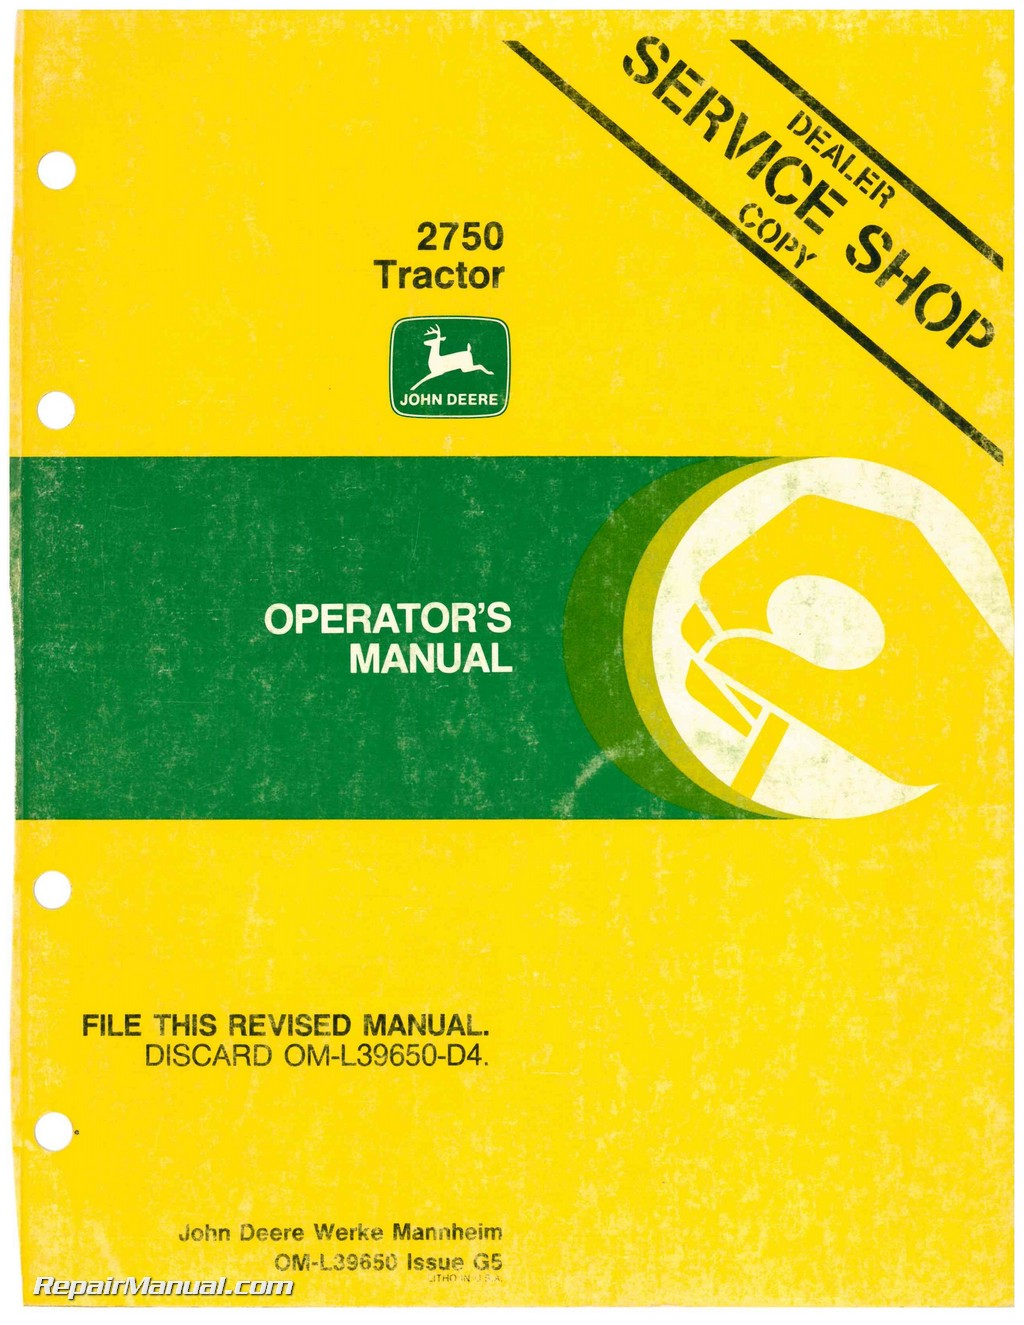 John Deere 2750 Wiring Diagram Jd 630 Tractor Operators Manual 1010